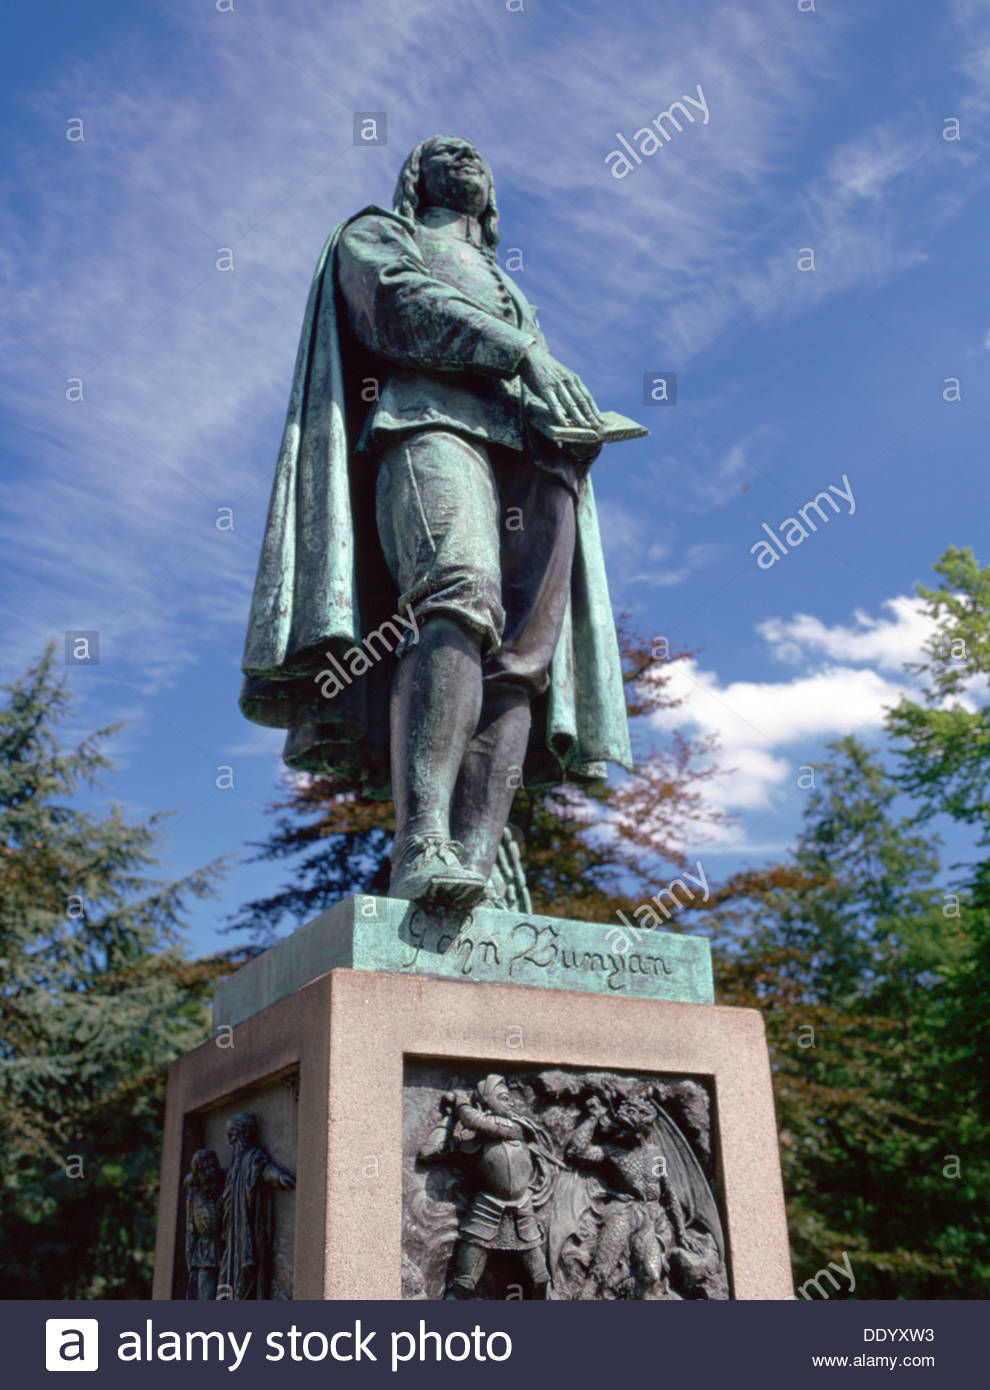 Statue of John Bunyan, English Christian preacher and writer, Bedford, Bedfordshire.  Artist: R Pilgrim - Stock Image